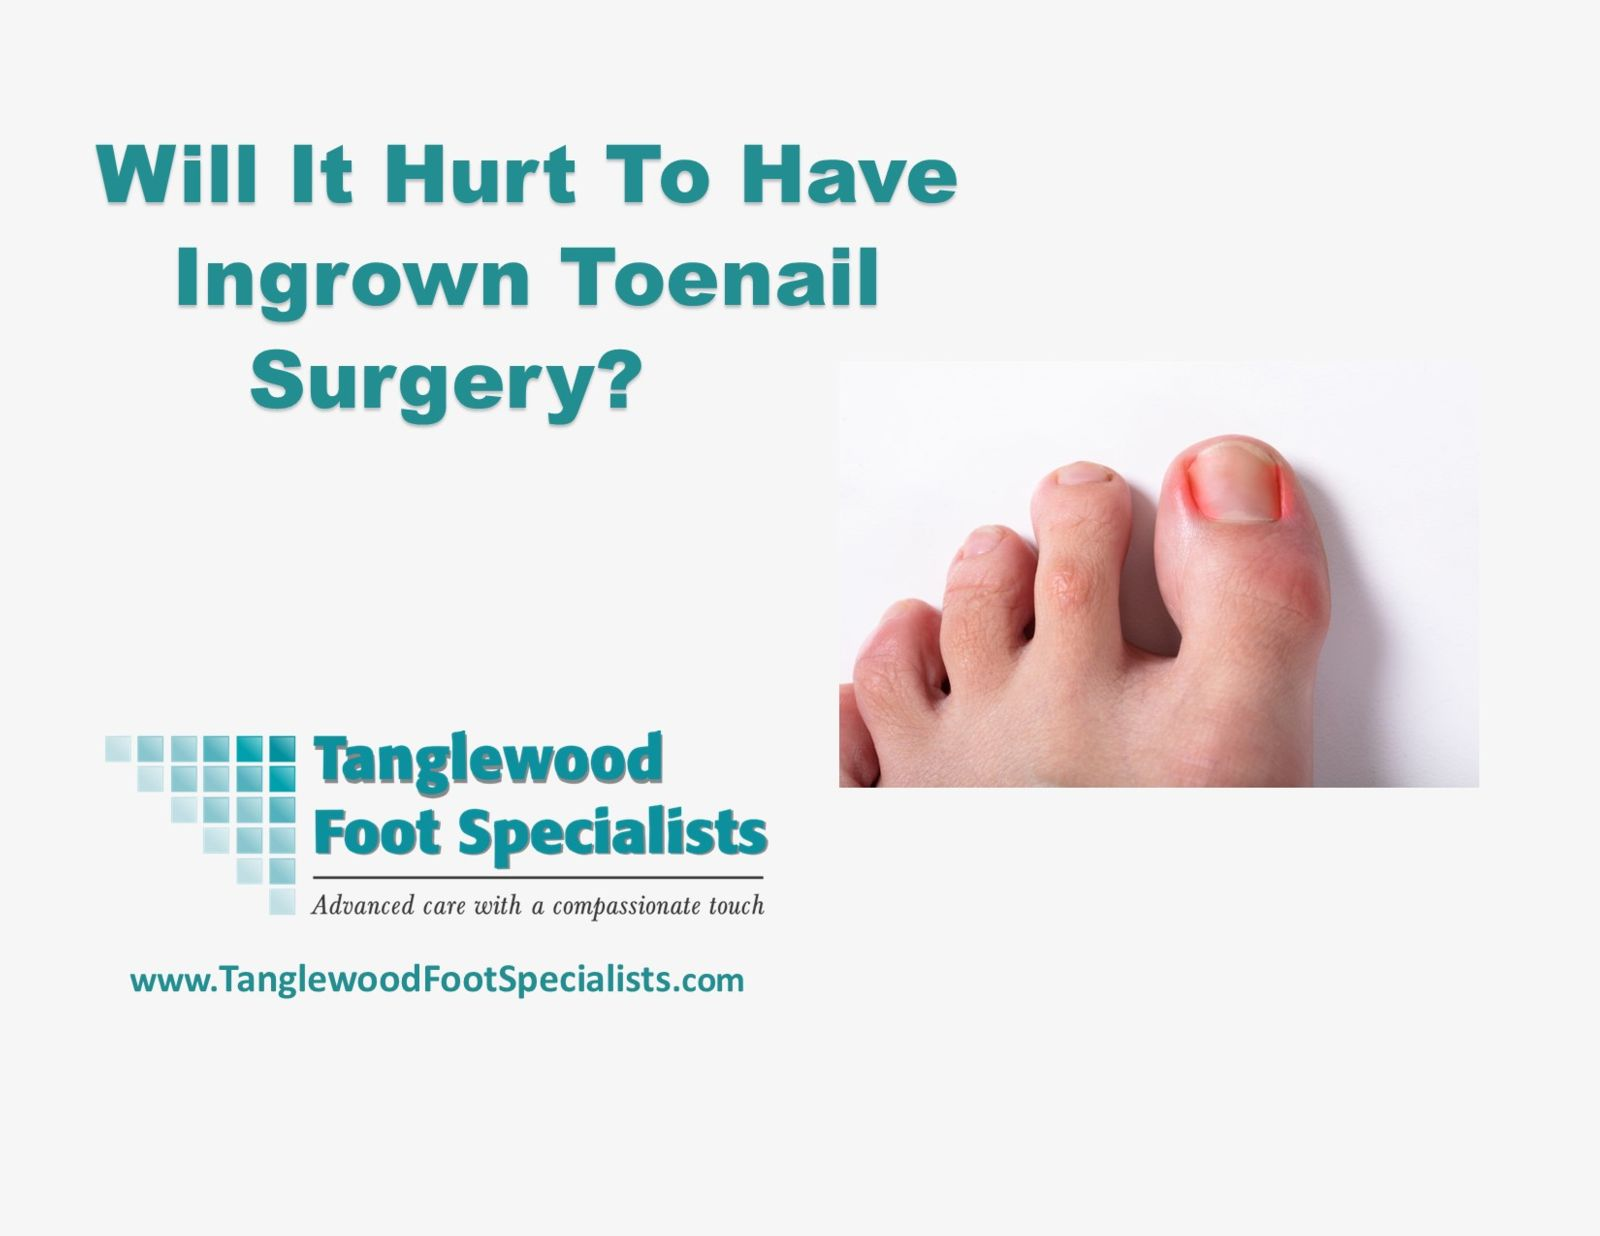 Houston podiatrist recommends painless ingrown toenail removal and surgery